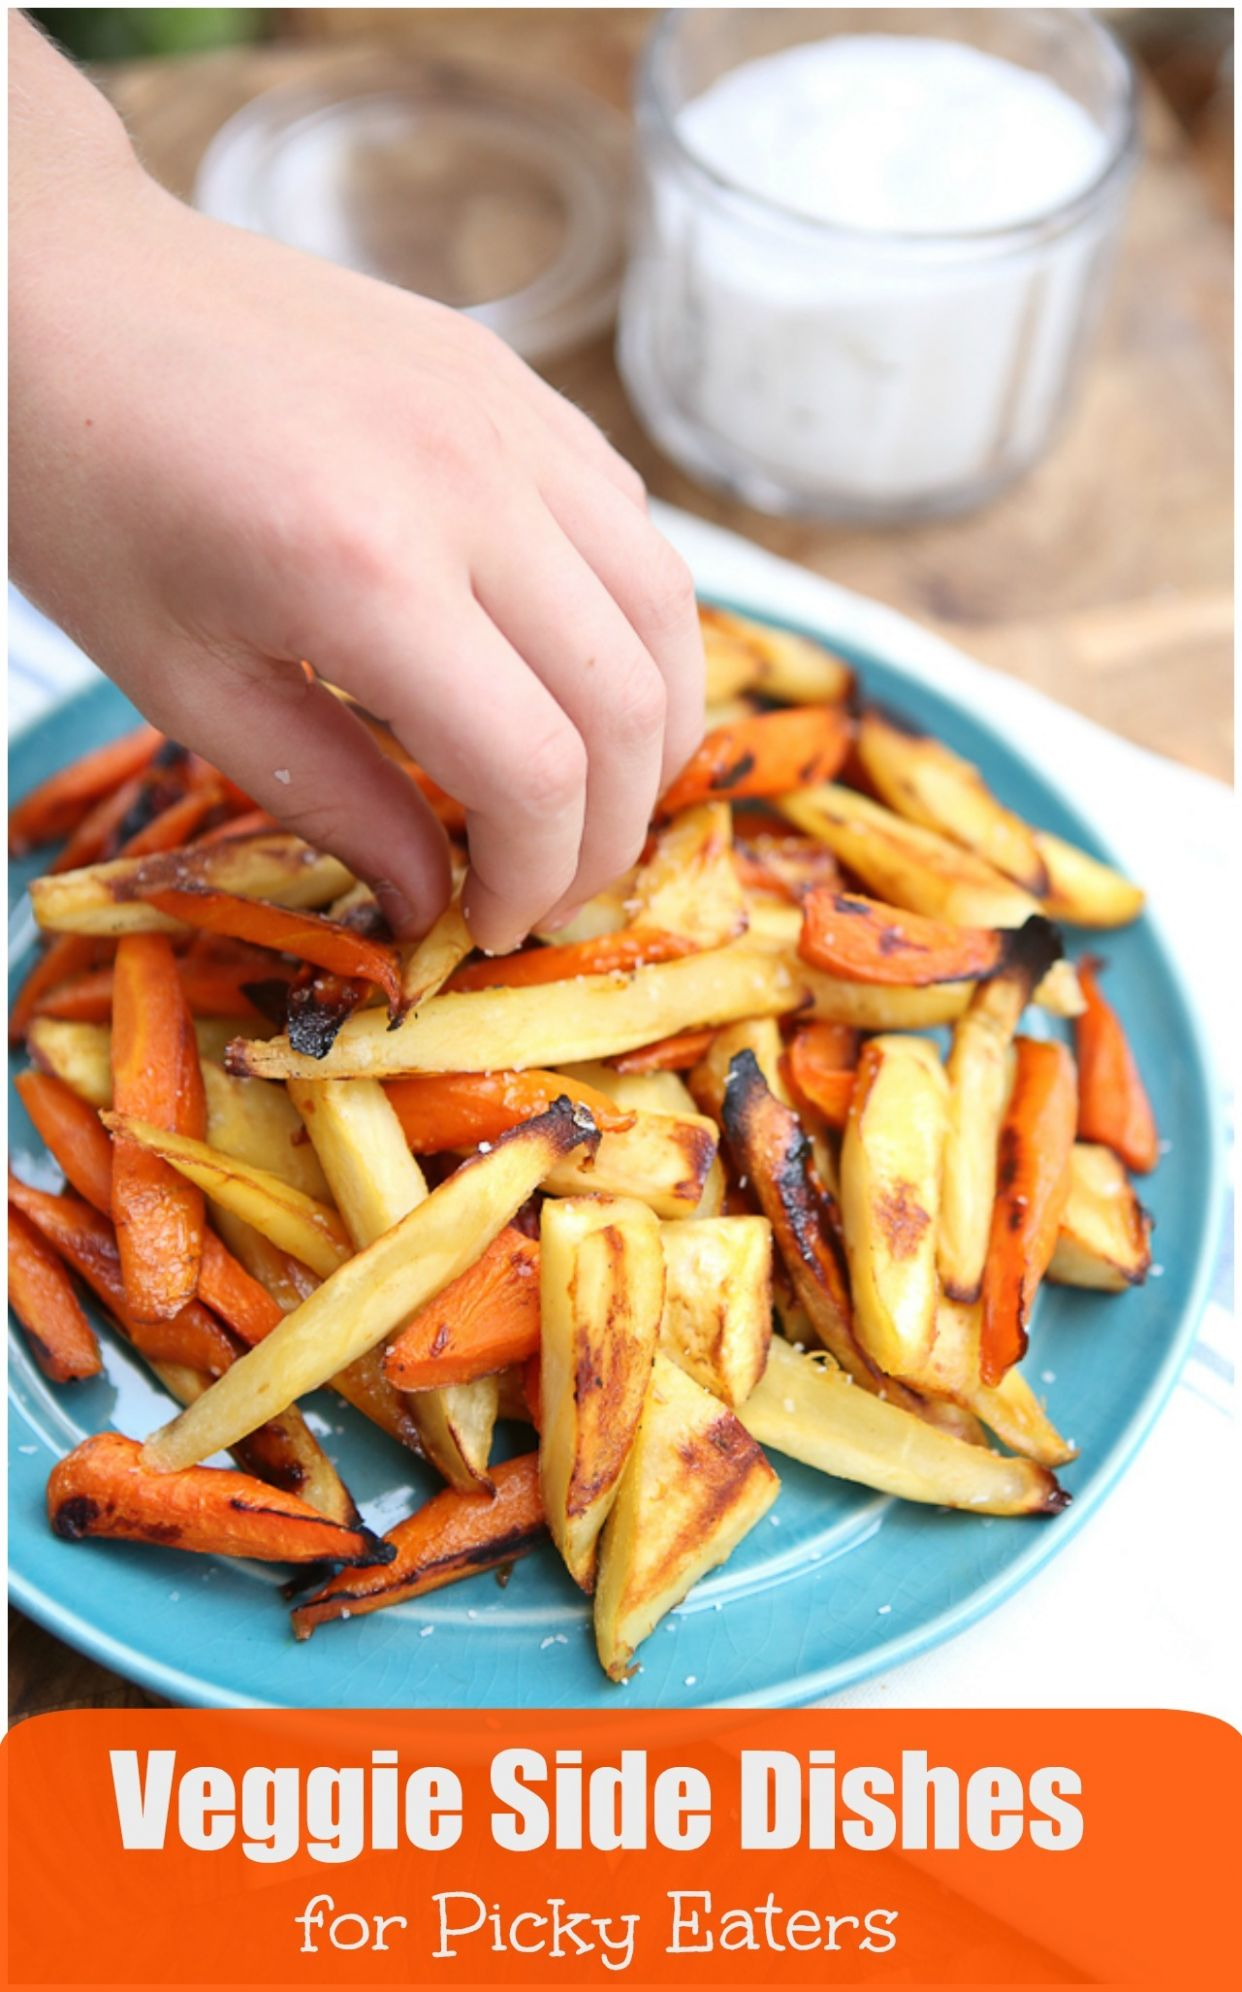 Veggie Side Dishes for Picky Eaters | Produce for Kids - Vegetable Recipes For Picky Eaters